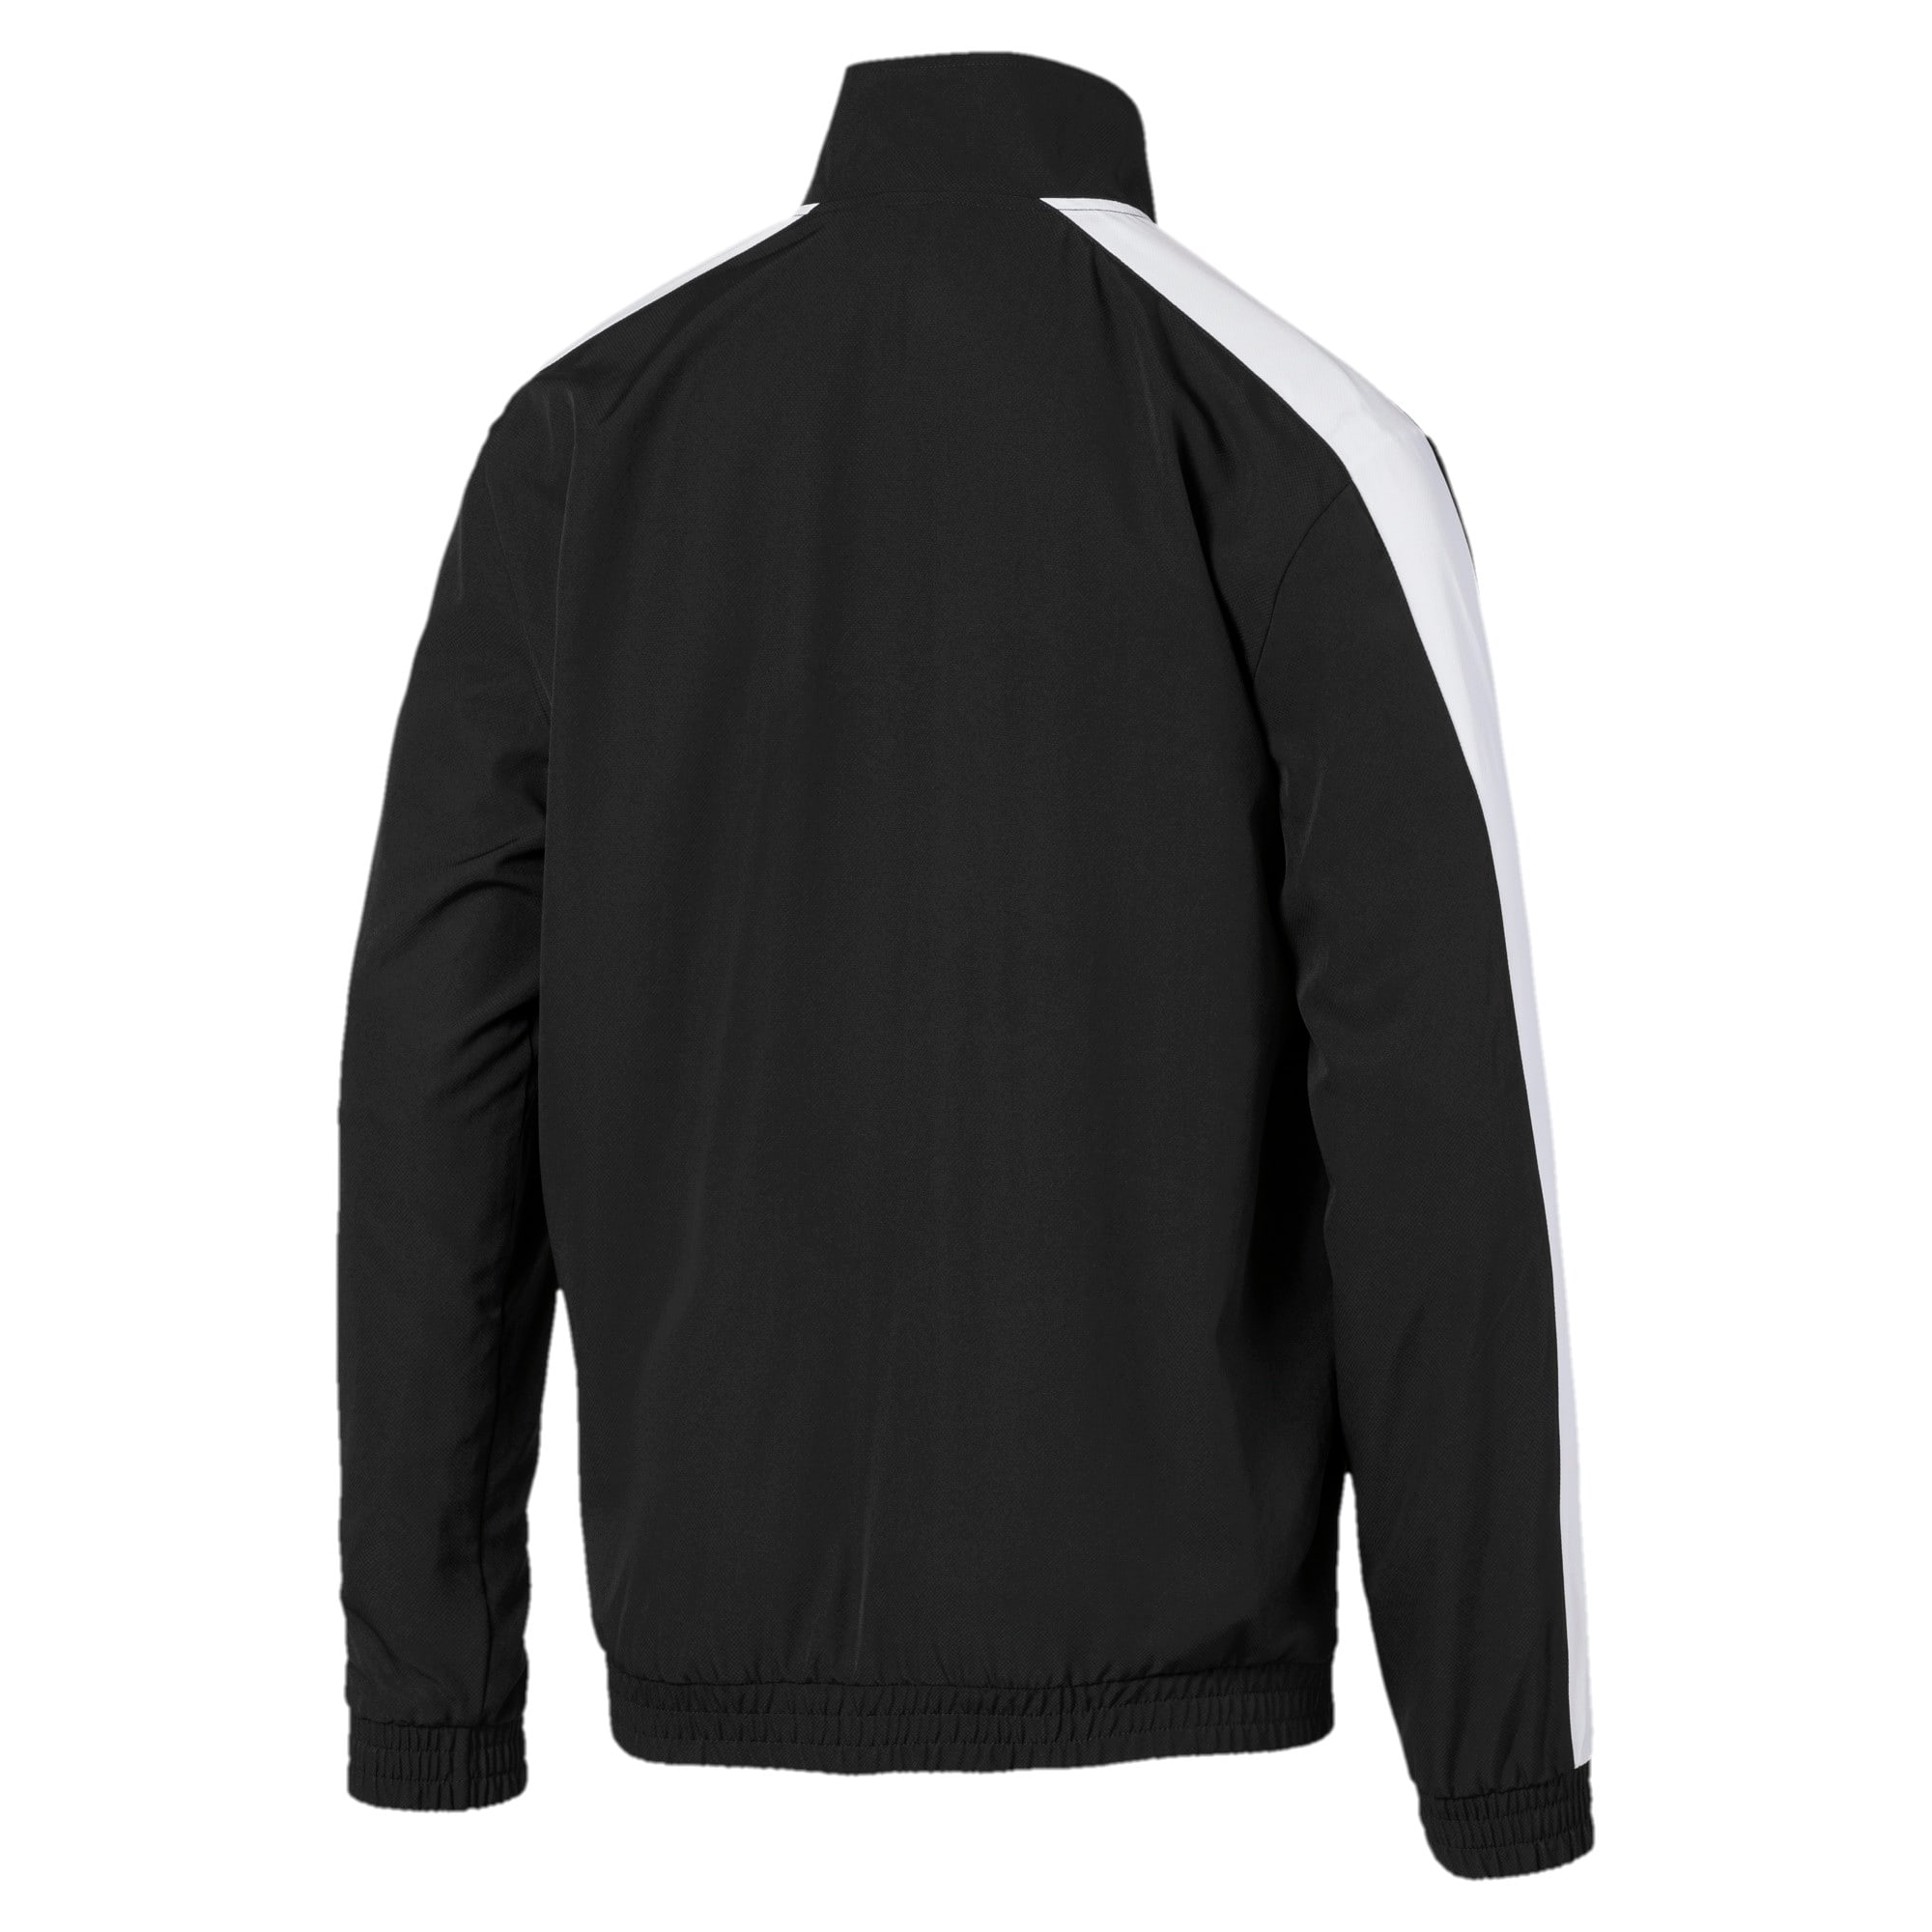 Thumbnail 5 of Iconic T7 Men's Woven Track Jacket, Puma Black, medium